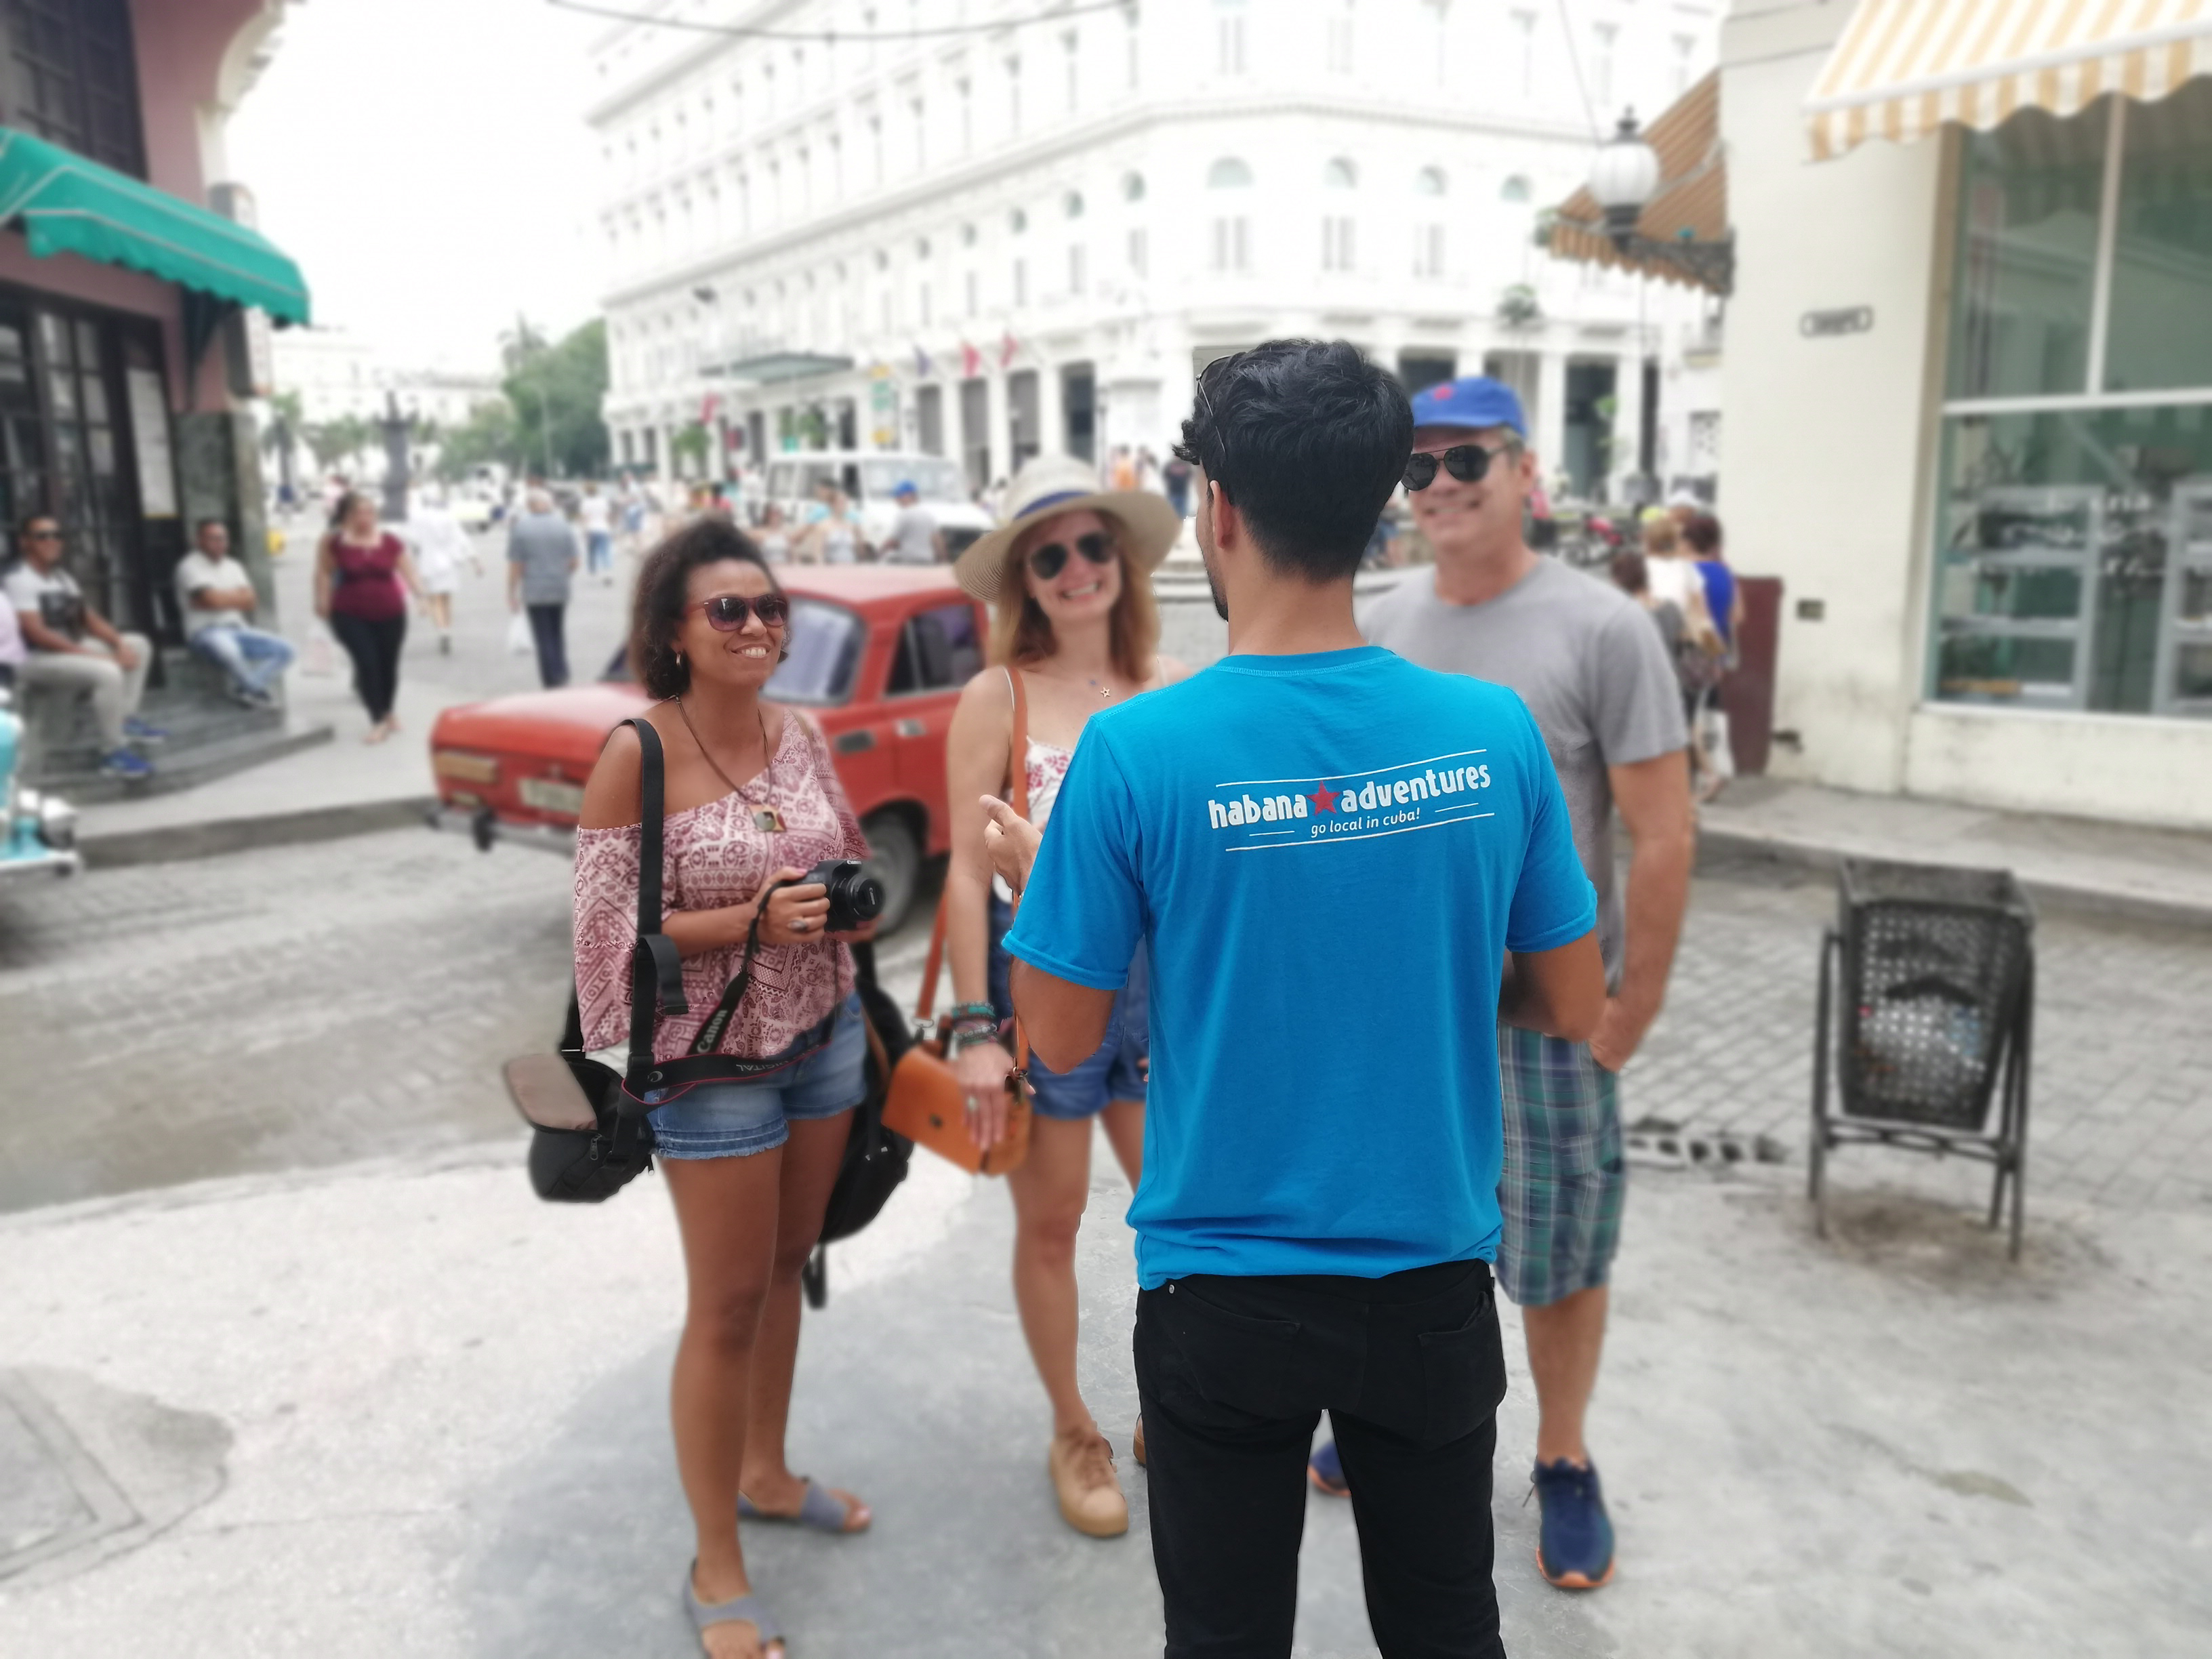 Havana Adventures guides are entertaining and personable